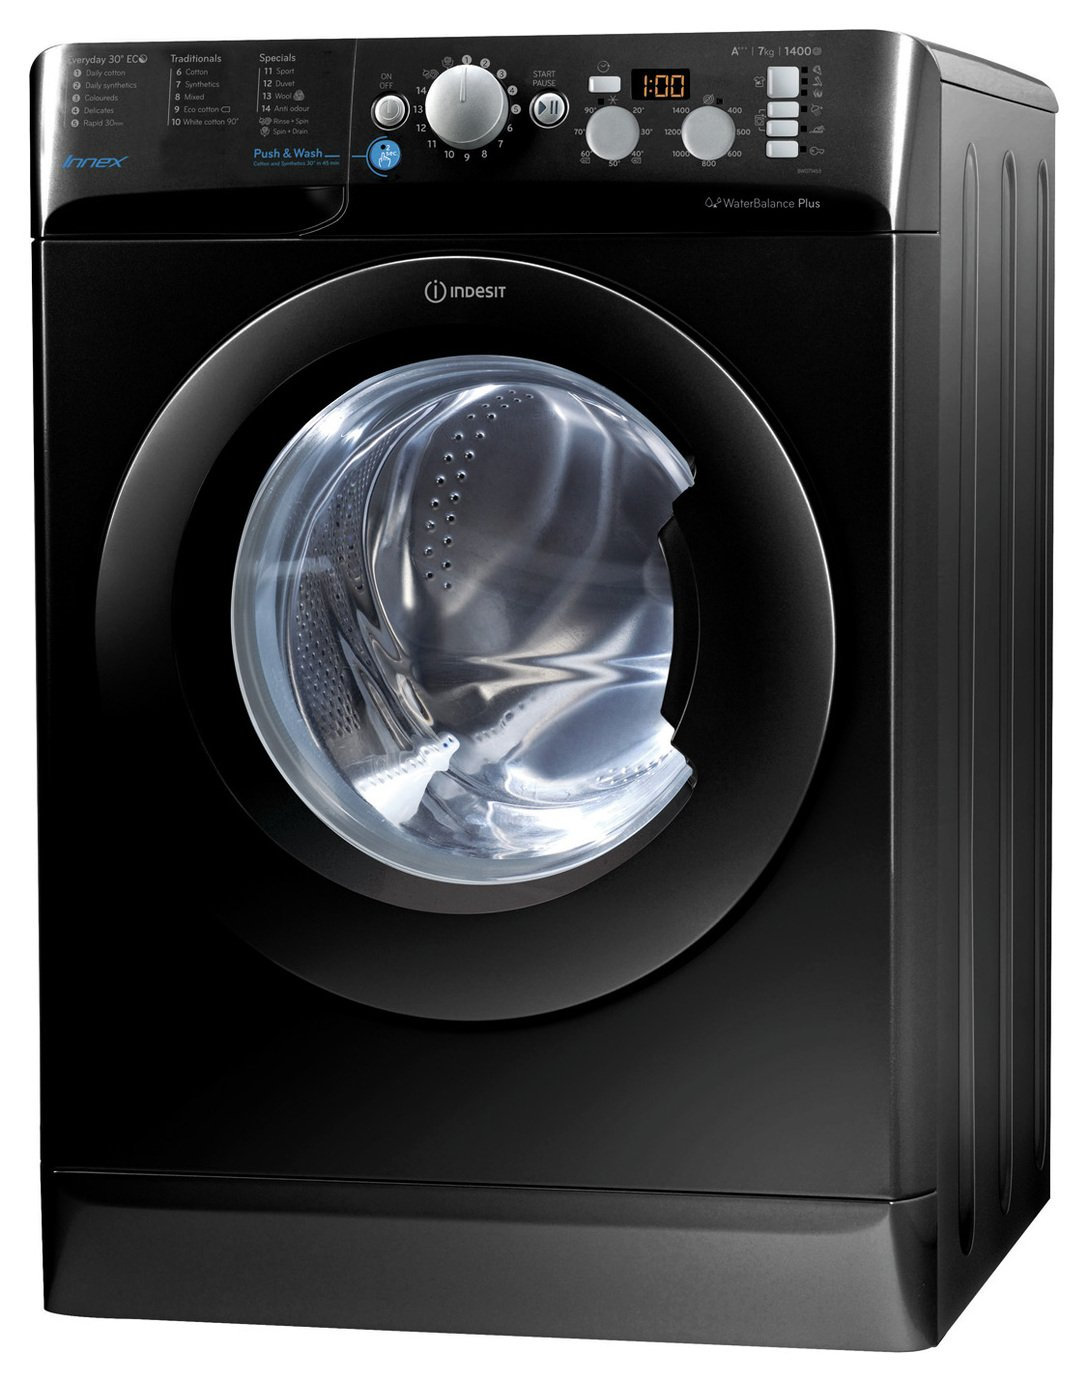 Indesit BWD71453KUK 7KG 1400 Spin Washing Machine - Black Best Price, Cheapest Prices